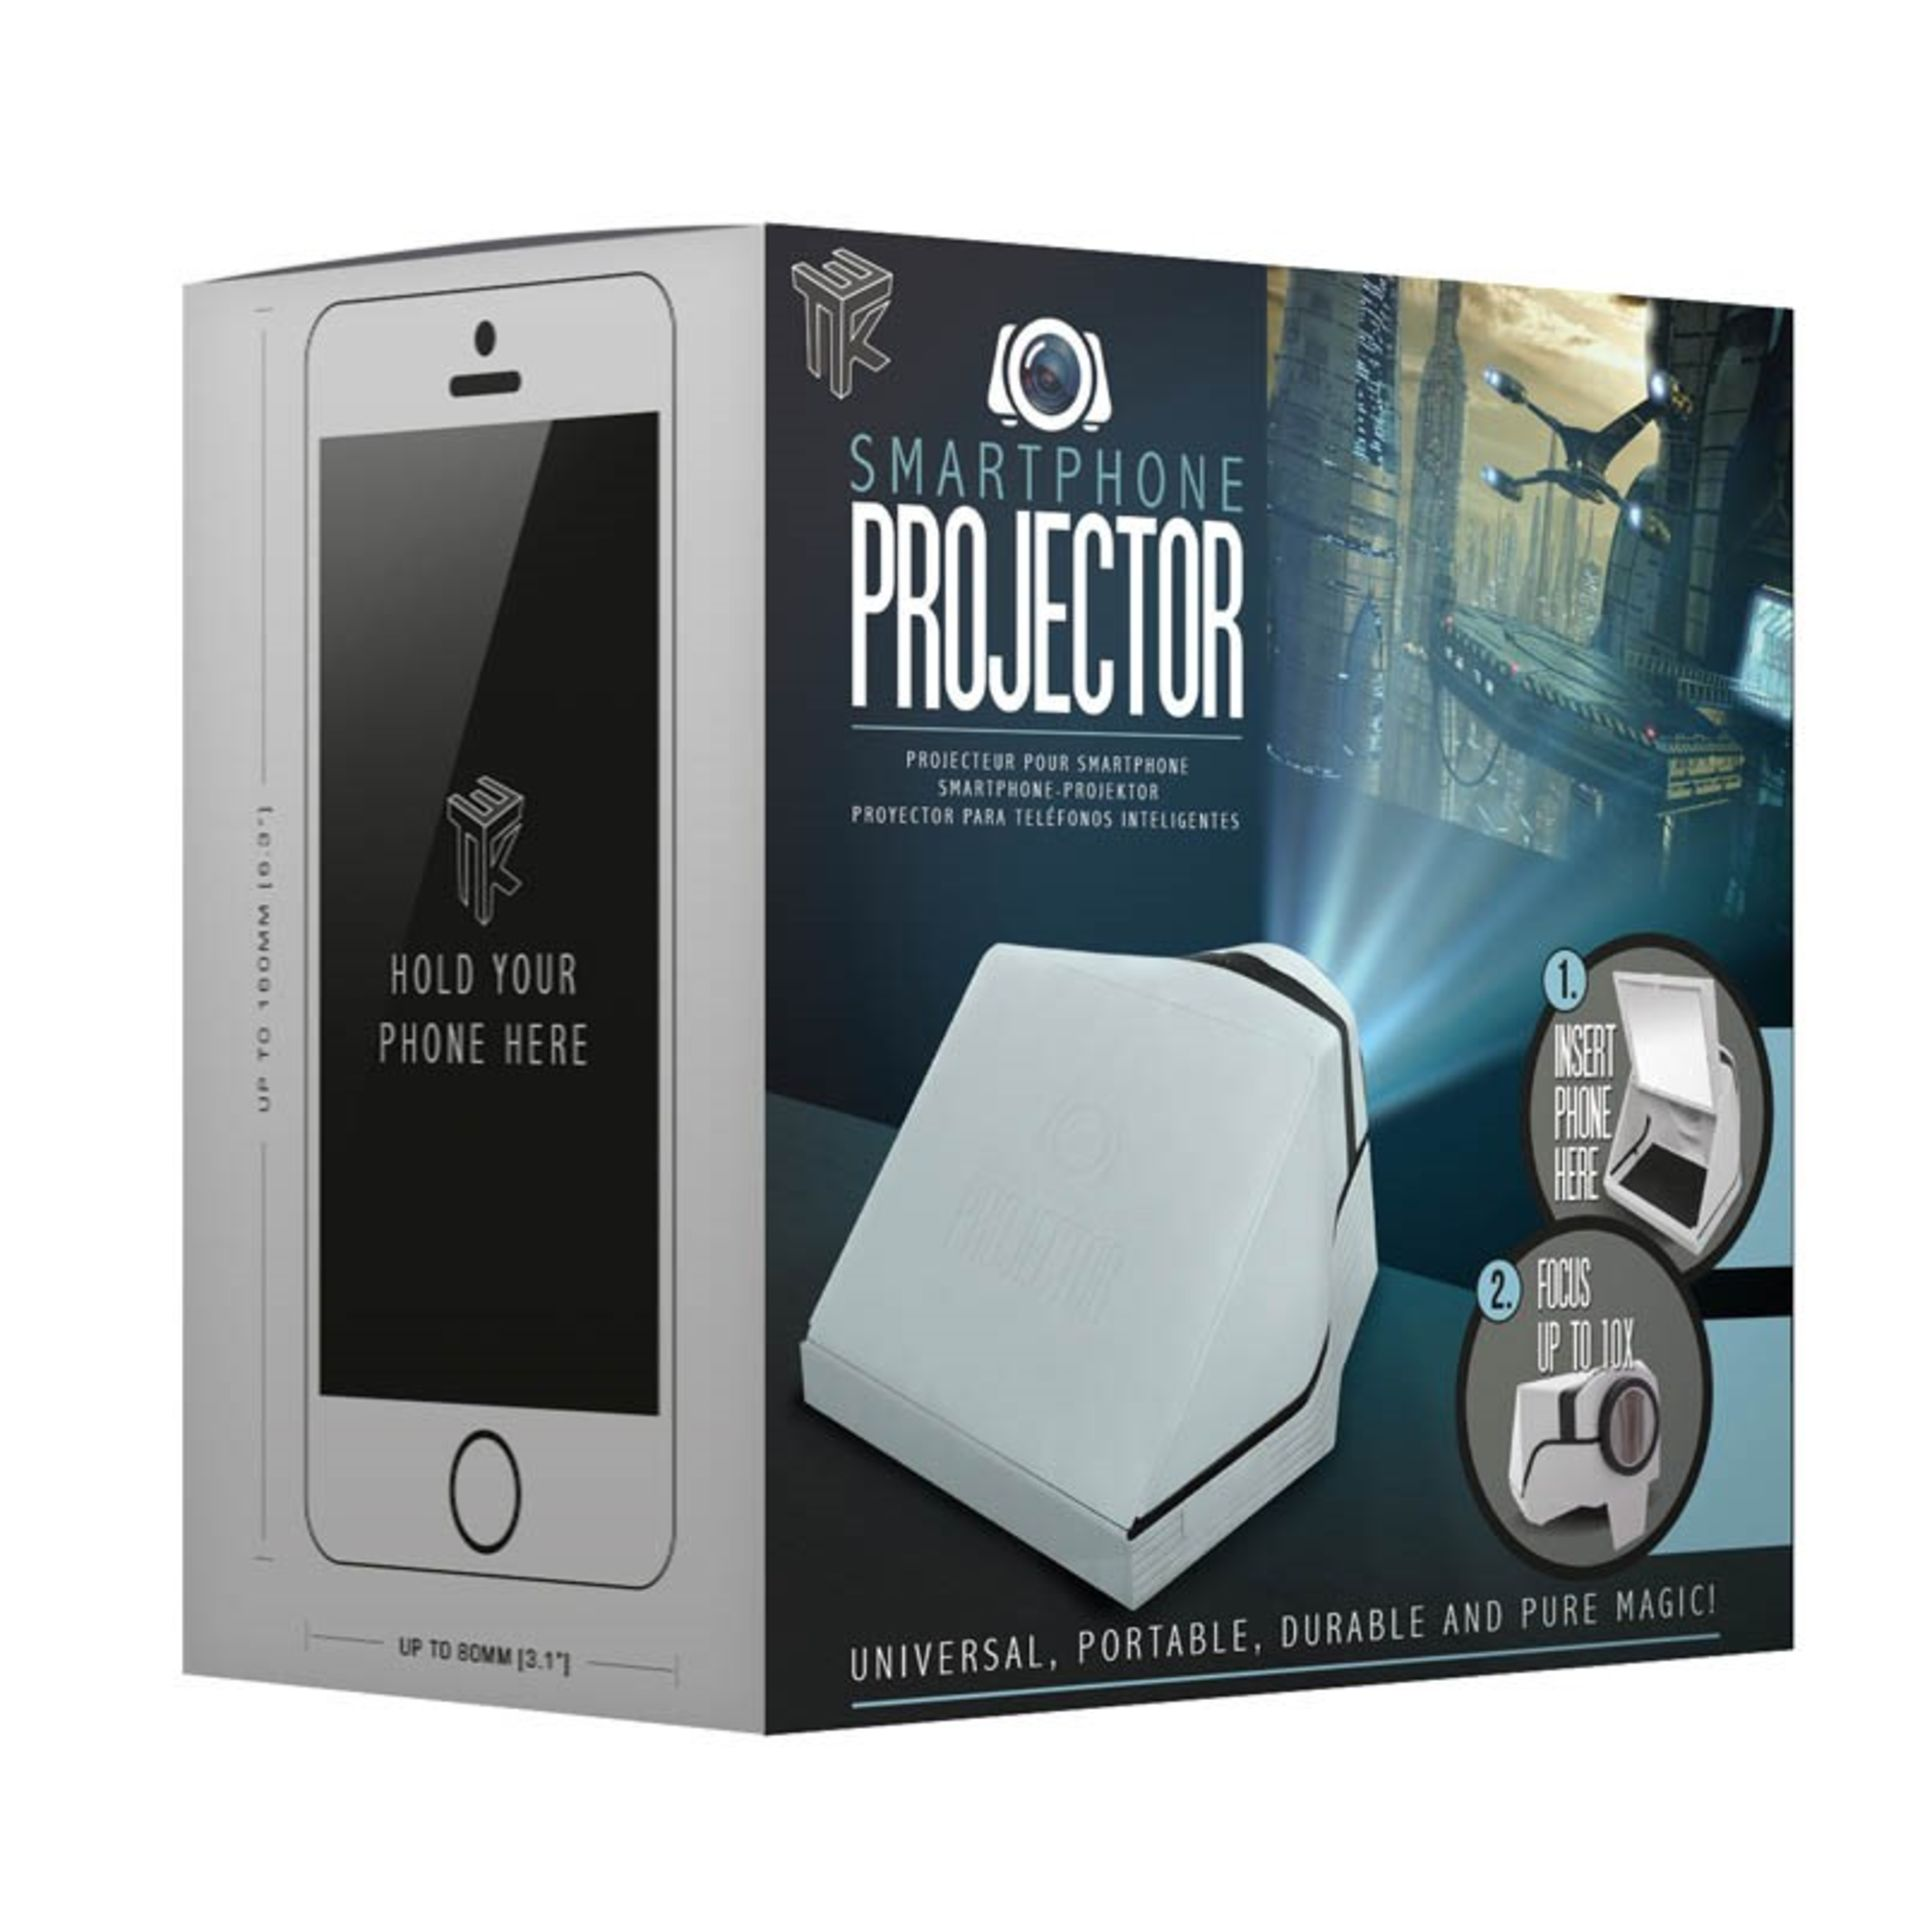 """V Brand New Smartphone Projector - Projects 40"""" Screen - Focus Up To 10x - ISP £19.99 (Paladone) - Image 2 of 2"""